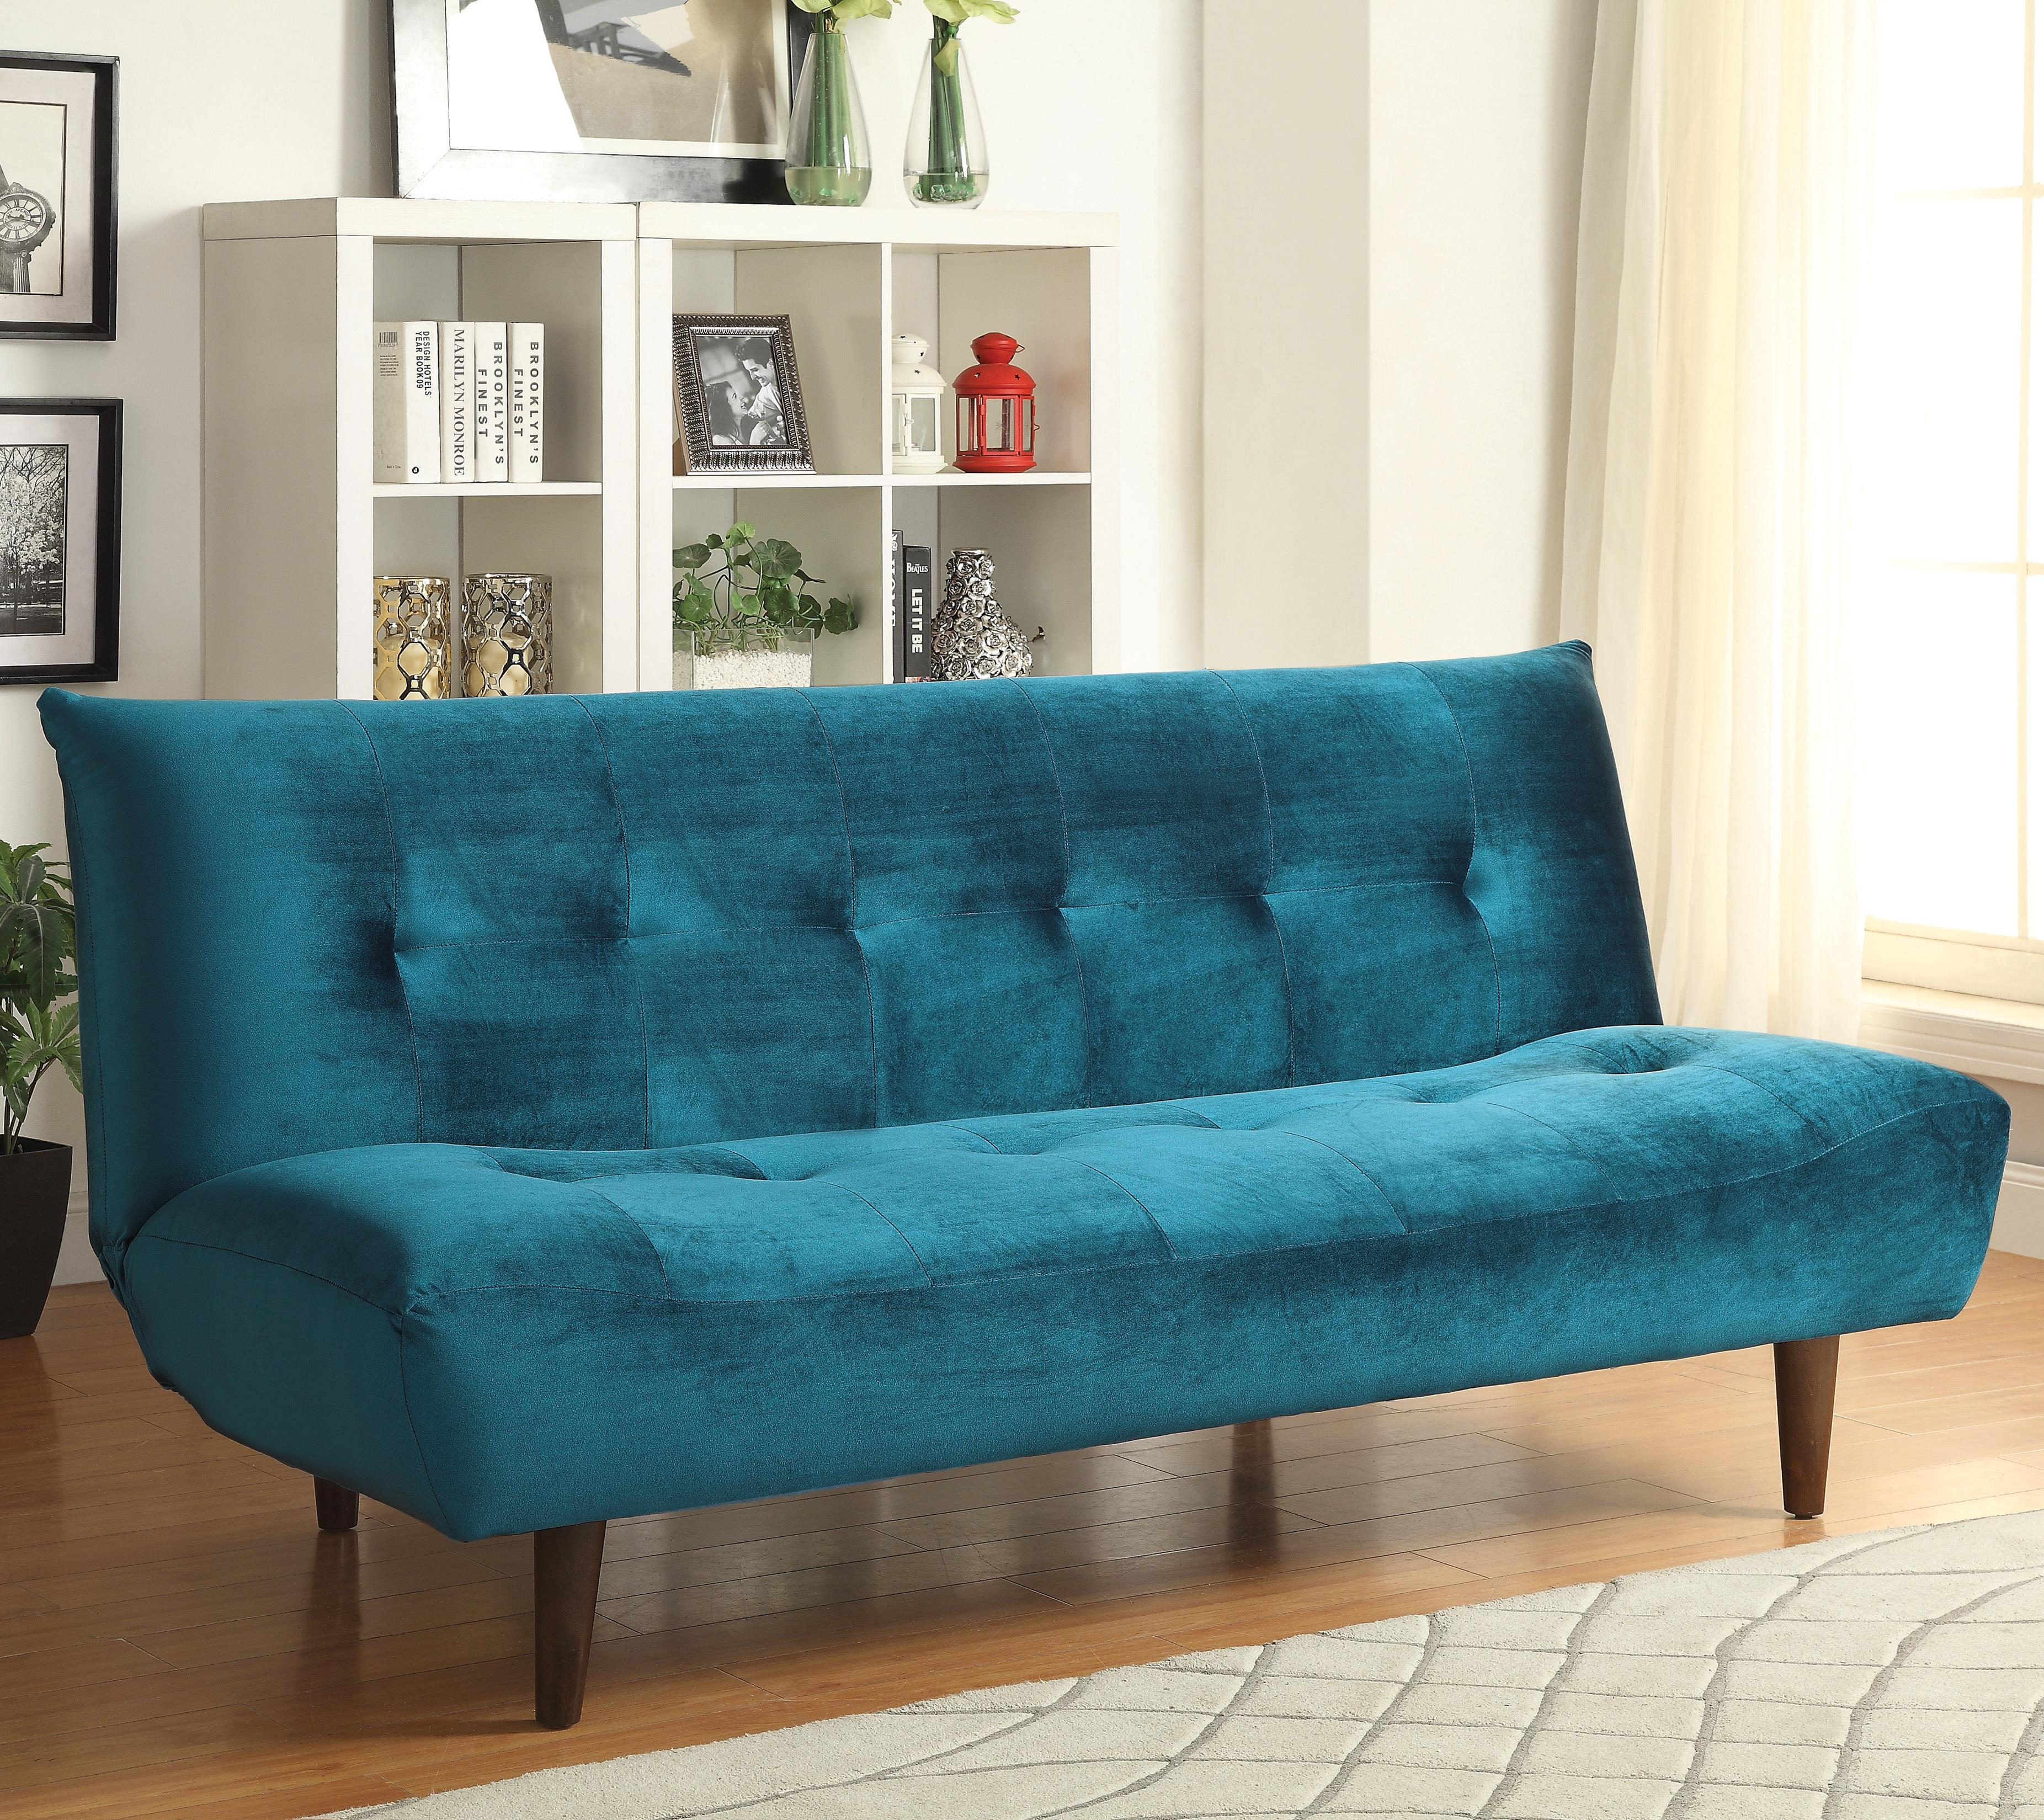 sofa beds and futons teal velvet sofa bed with solid. Black Bedroom Furniture Sets. Home Design Ideas